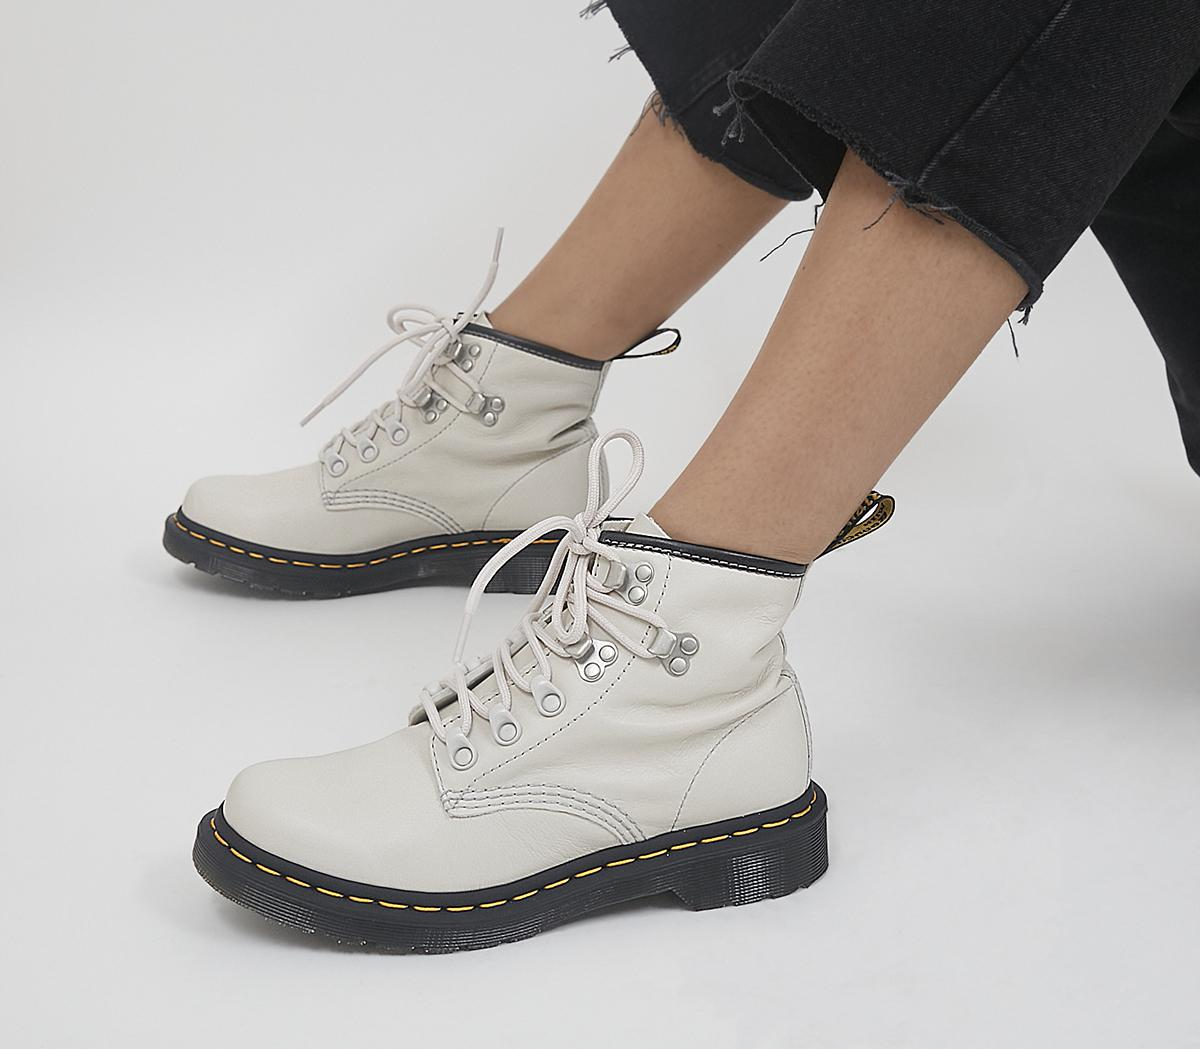 101 Hardware Boots